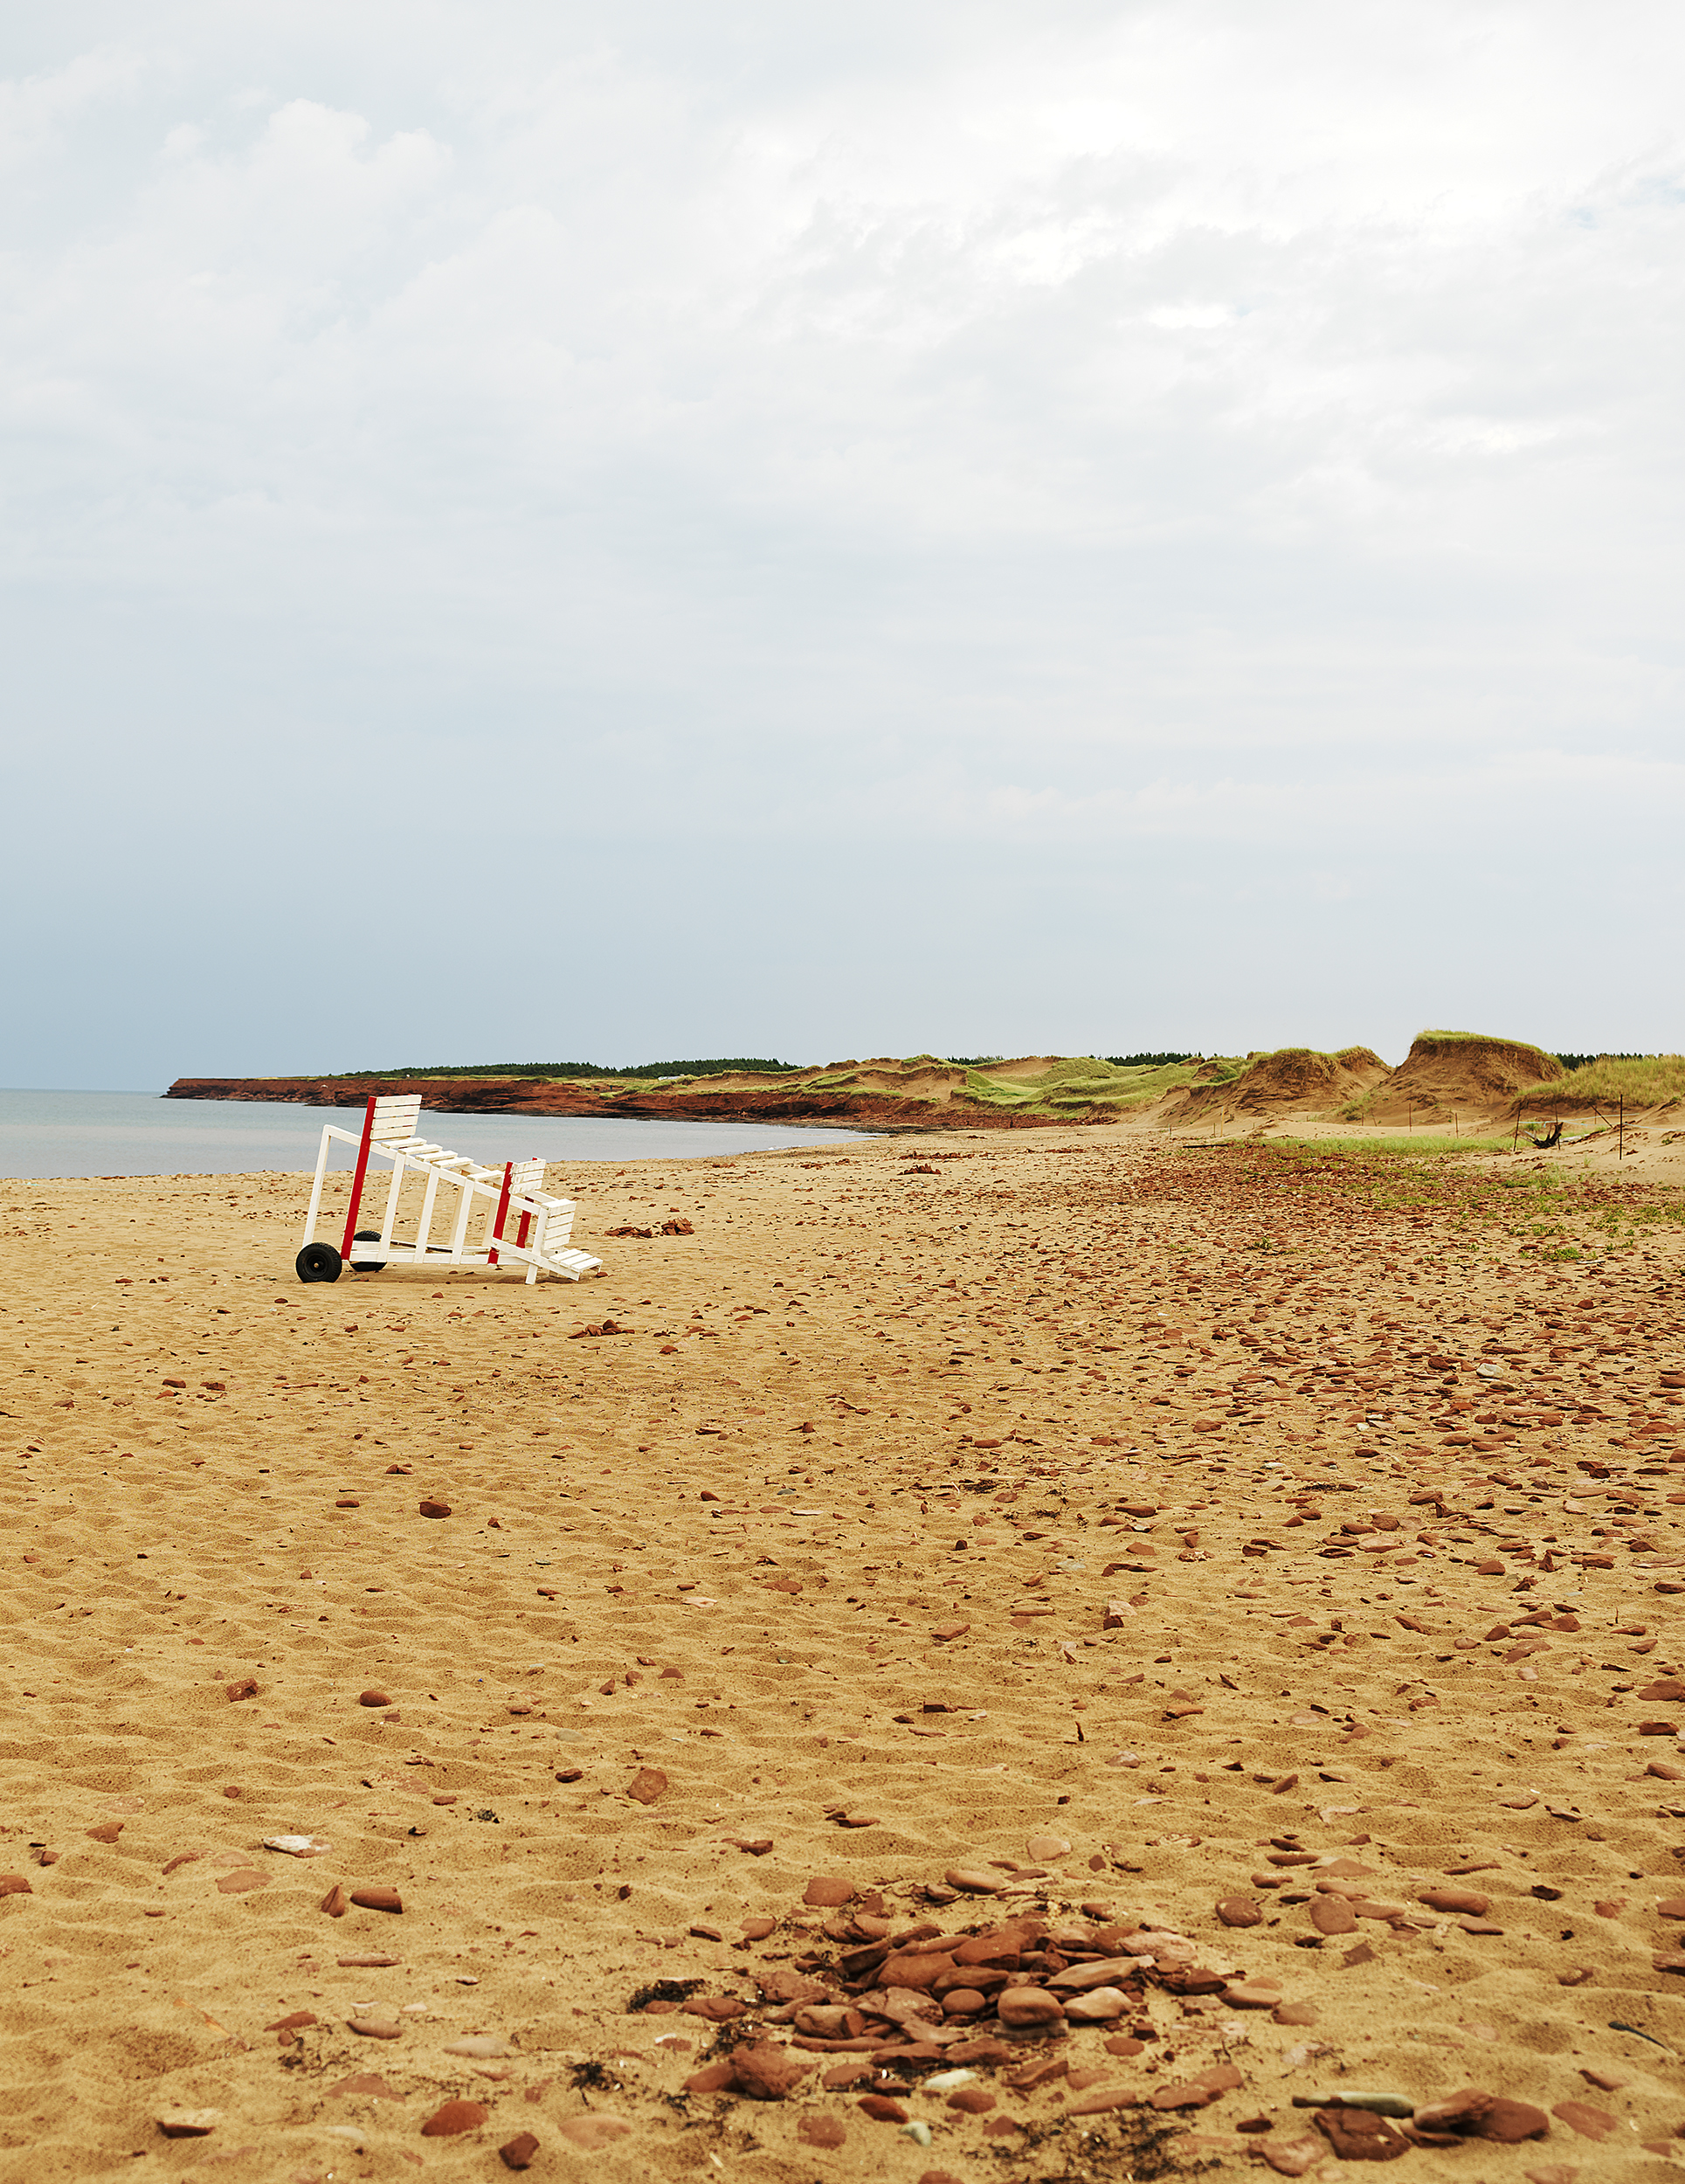 Price Edward Island beaches